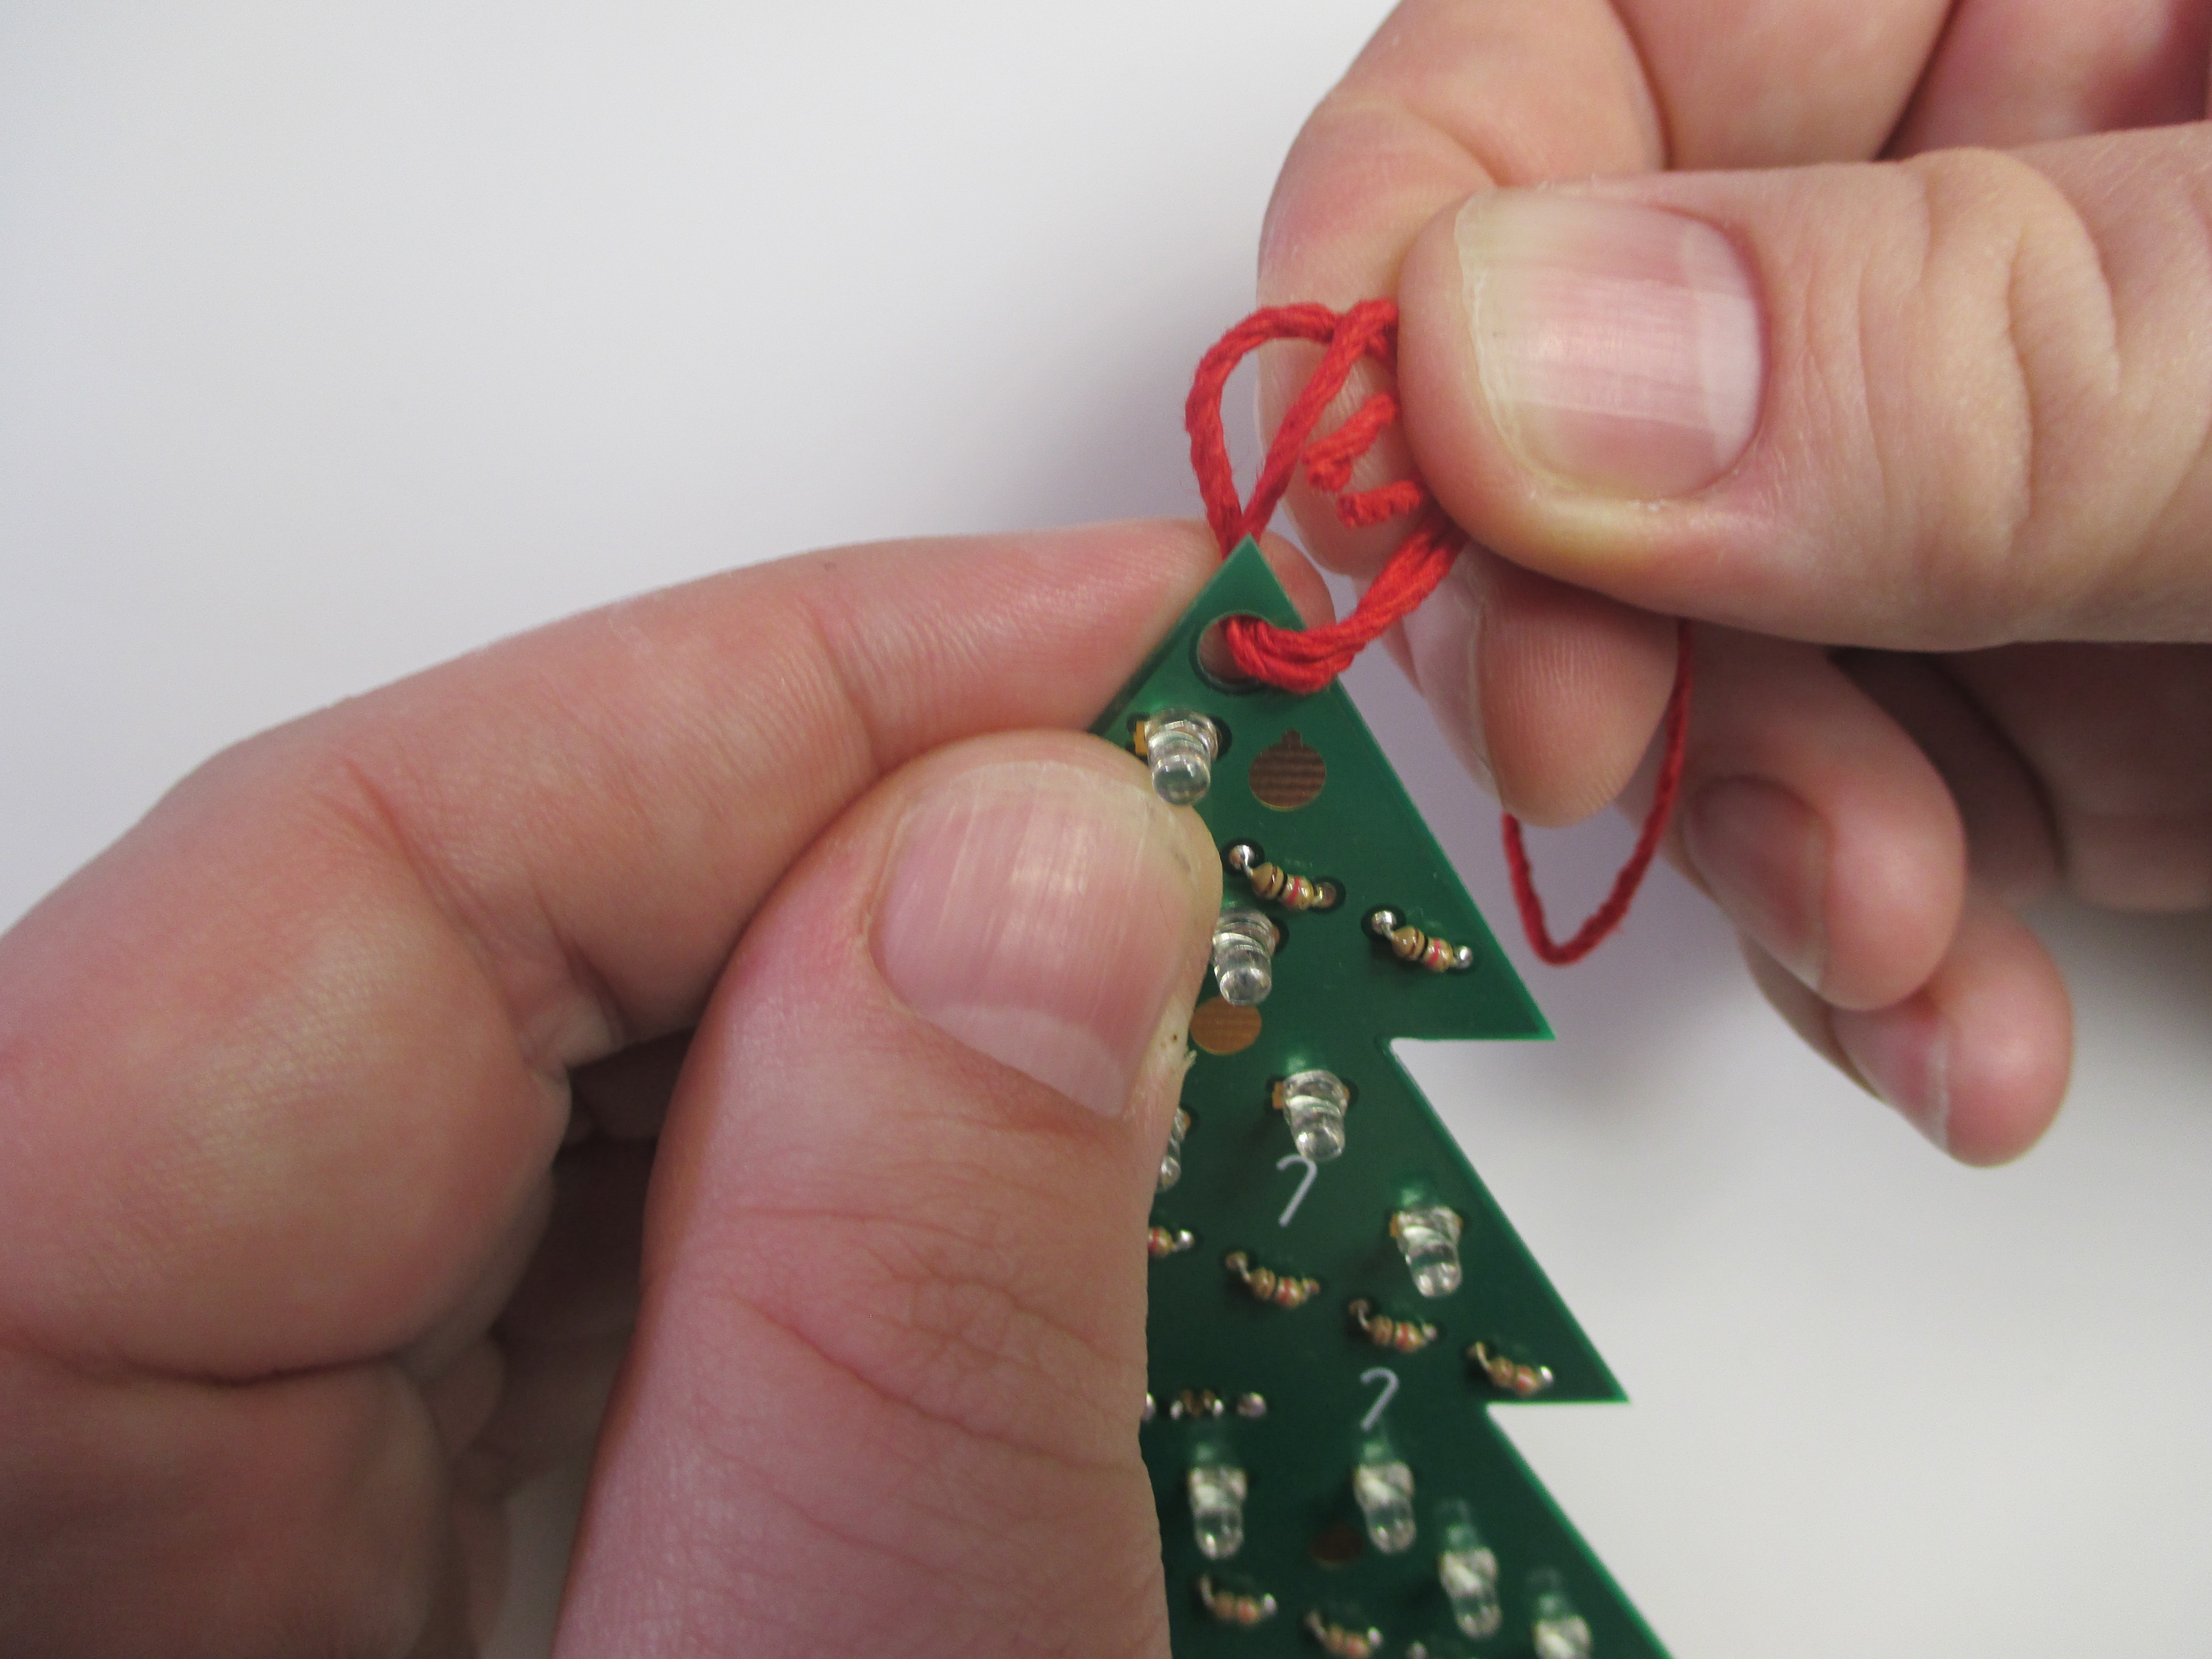 Picture of Tie the String Through the Hole in the Ornament